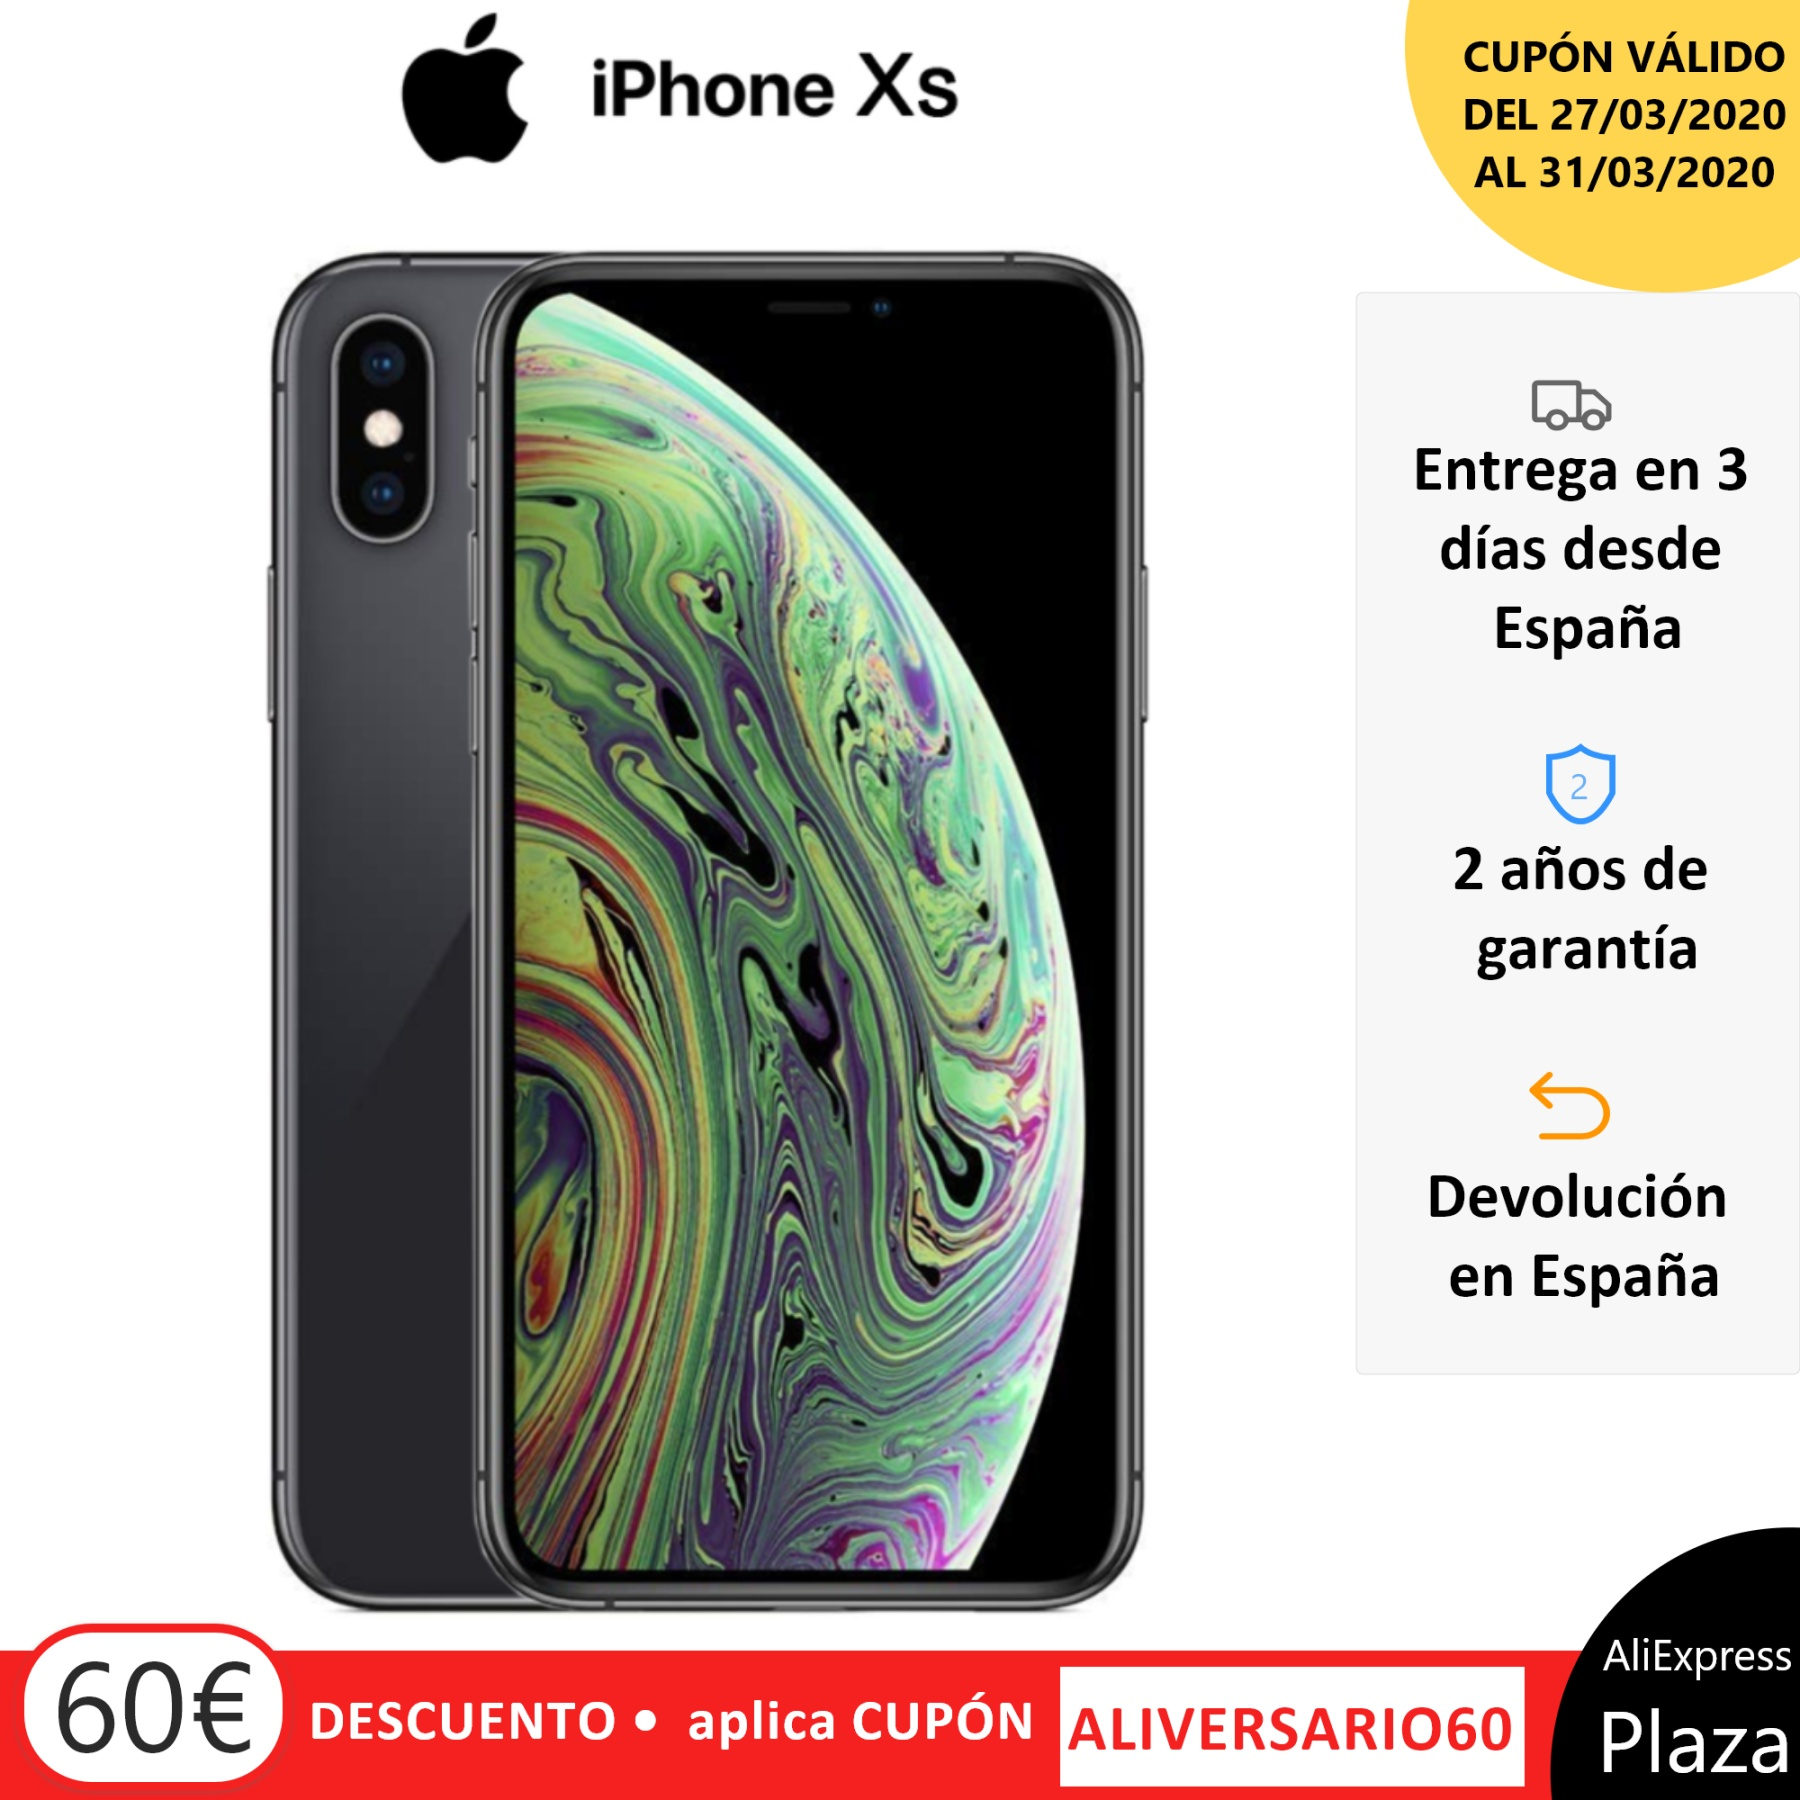 Apple iPhone Xs, Color Grey (Greys), EU Version. Band 4G/LTE/Wi-Fi, 6 internal 4GB de Memoria, 4GB Ram, Screen